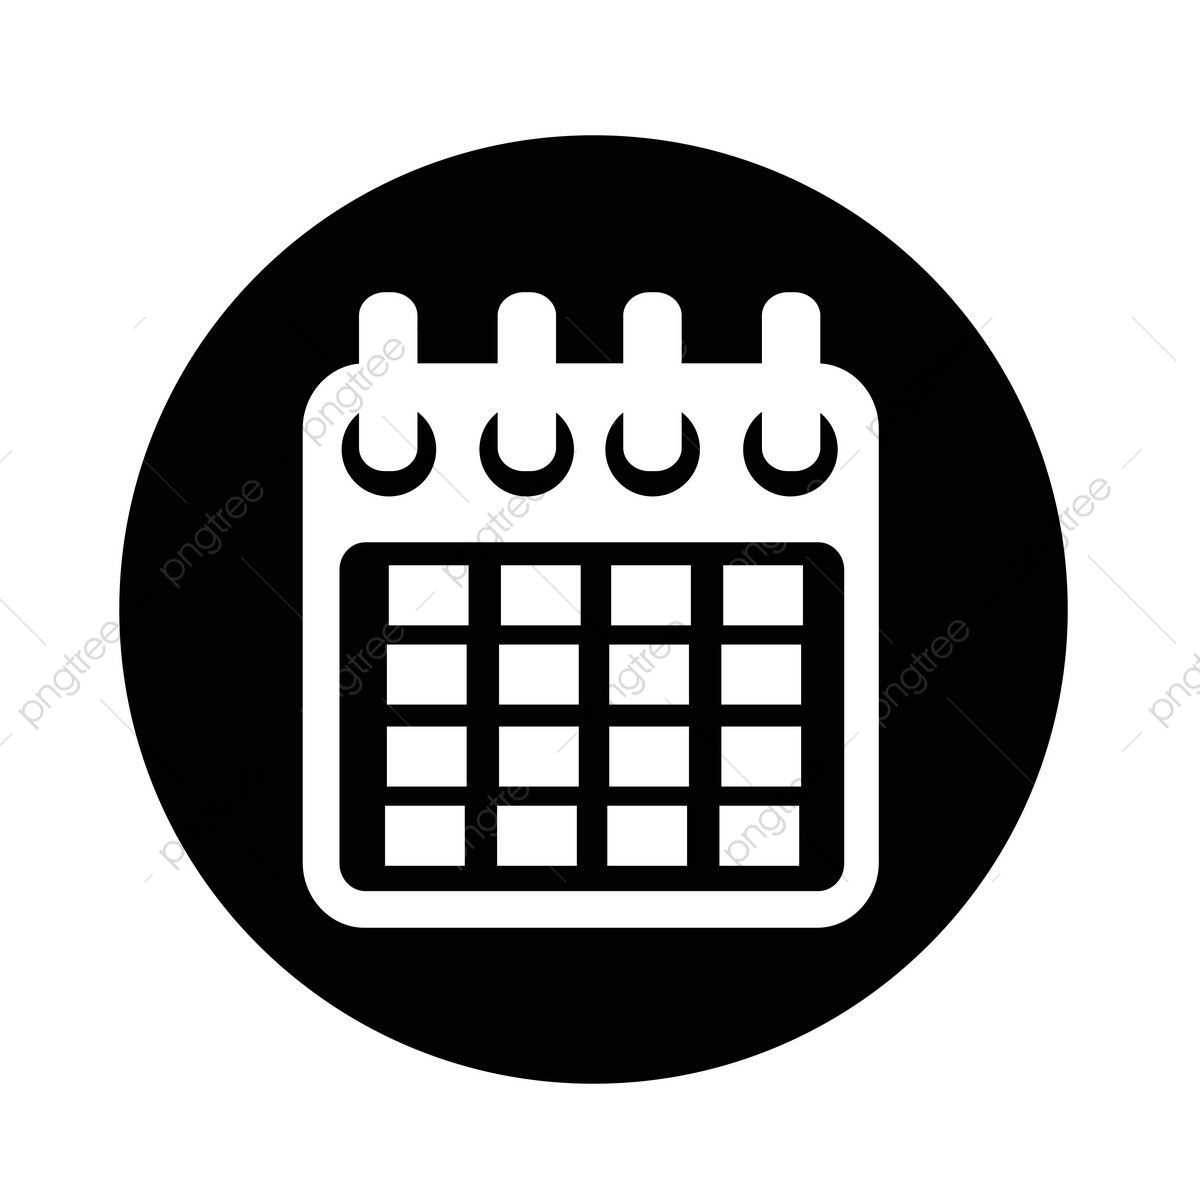 Calendrier Icone Png.Calendrier Icone